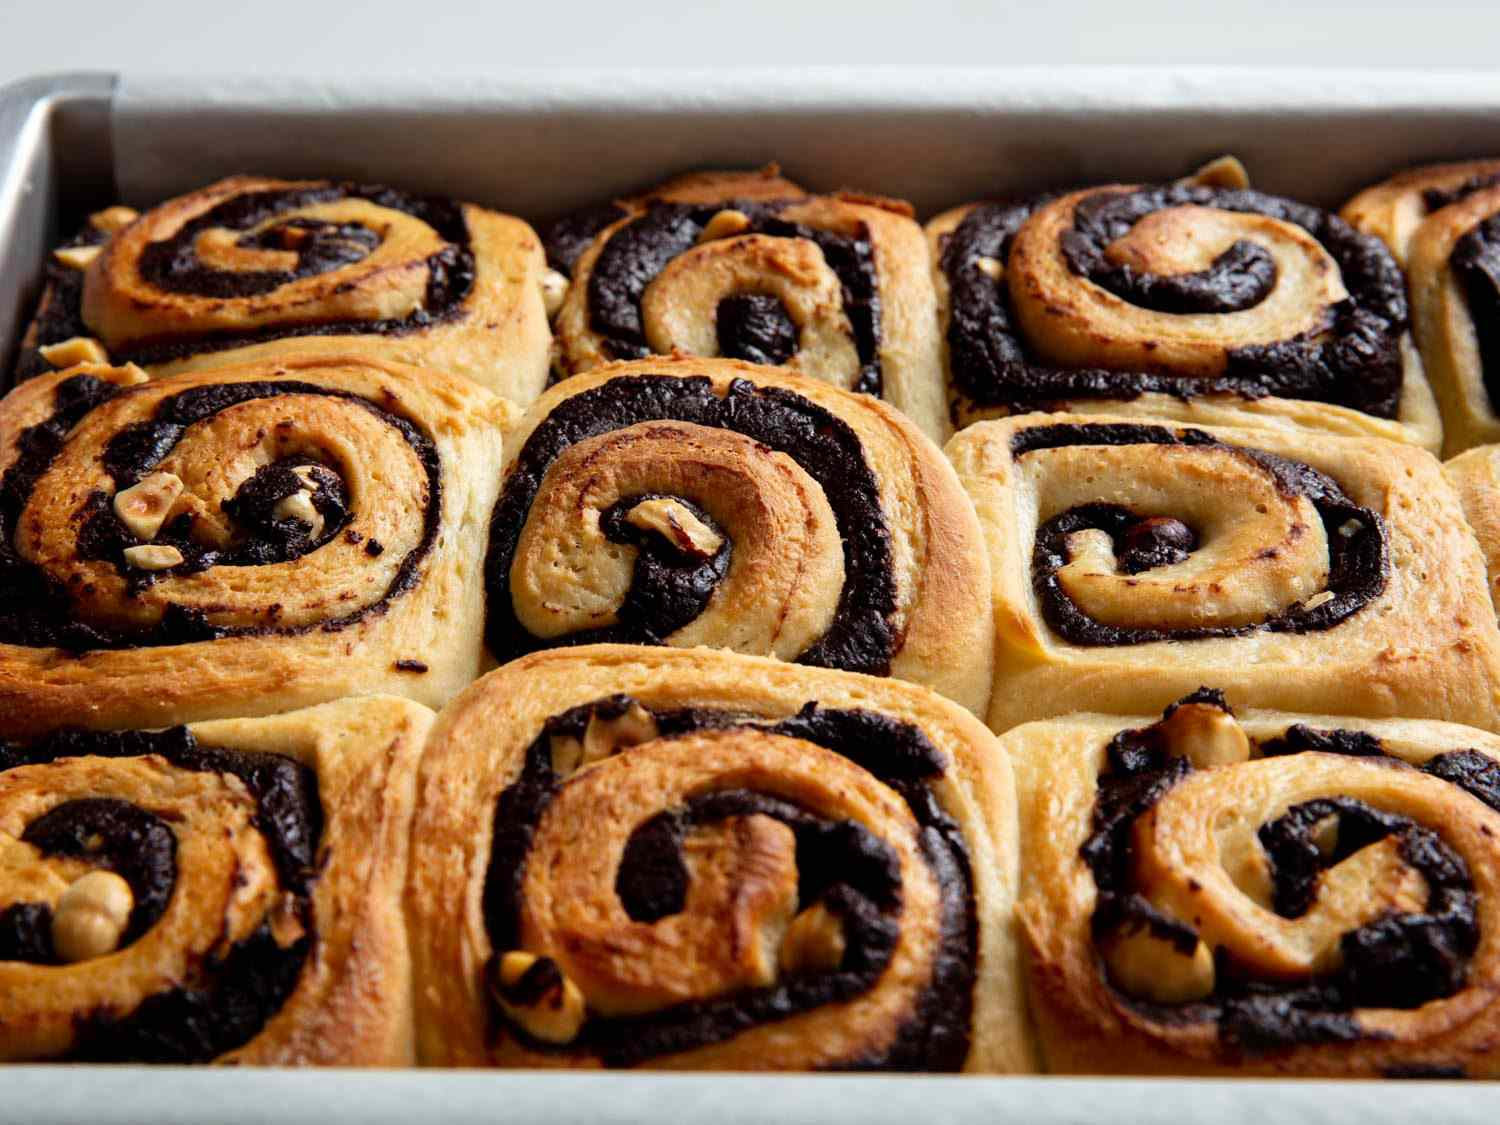 chocolate hazelnut buns fresh from the oven